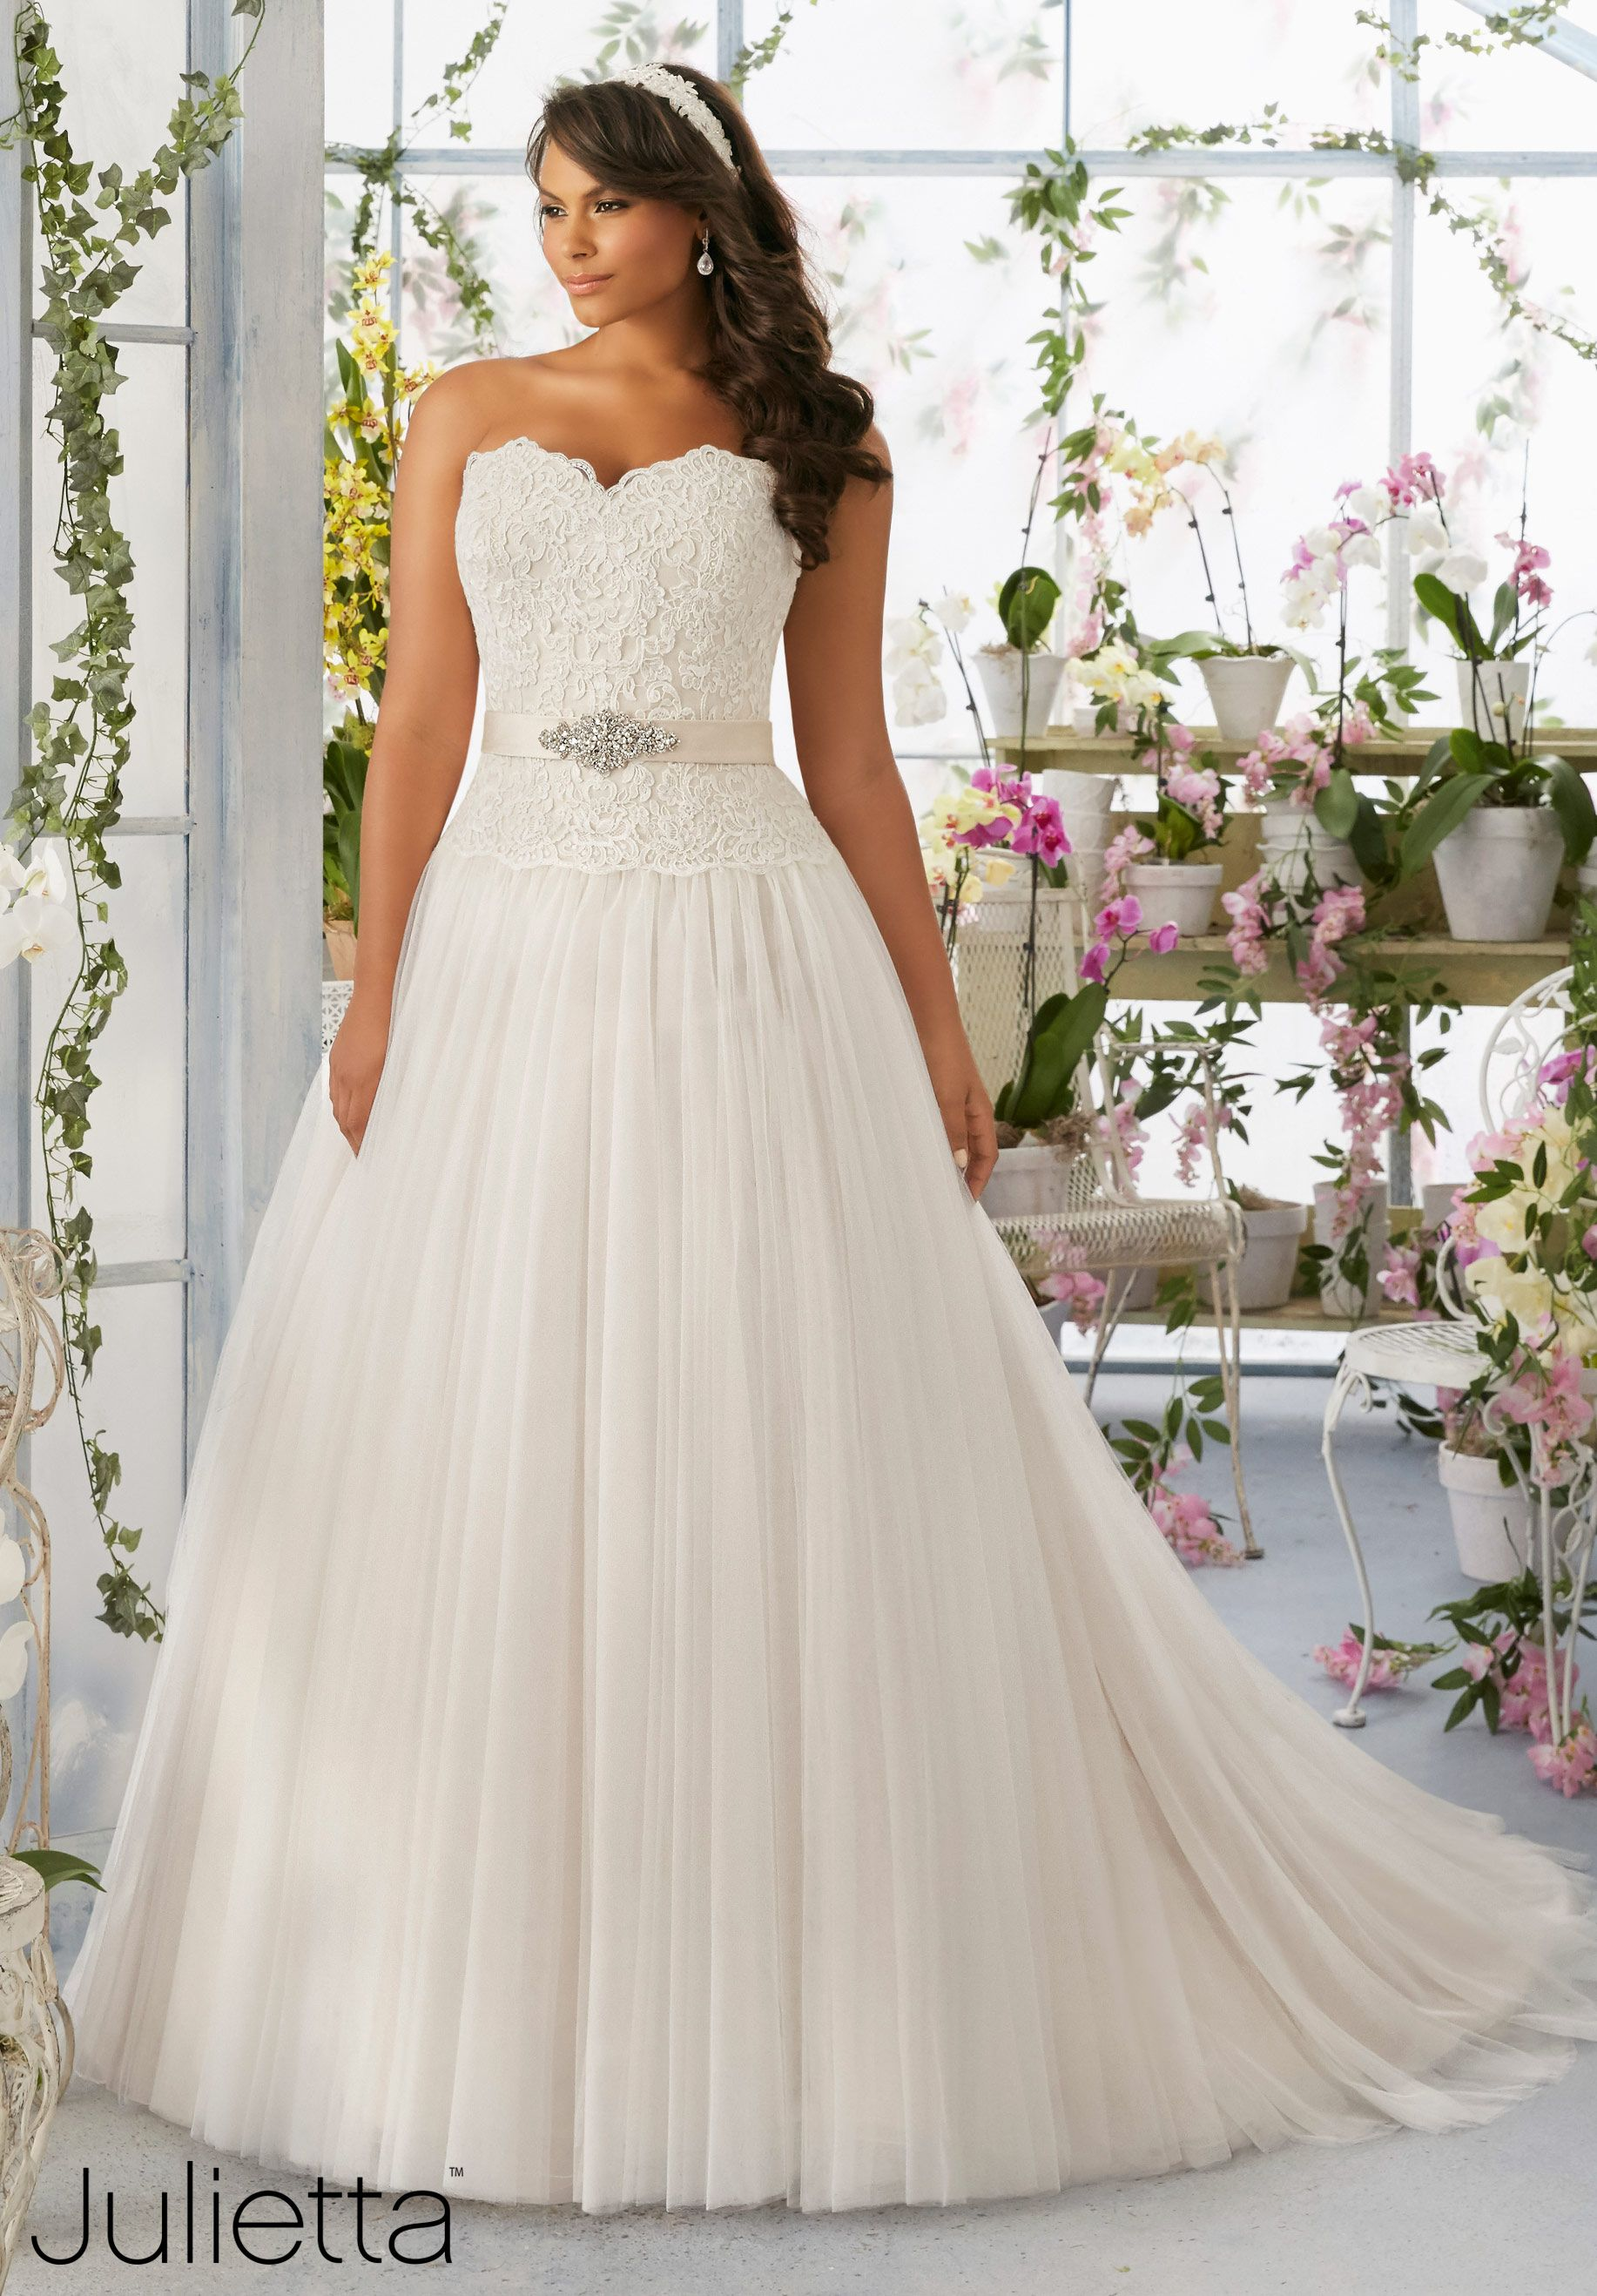 89542879e03  Plus Size Wedding Gown of the Day  New Julietta Collection by Mori Lee